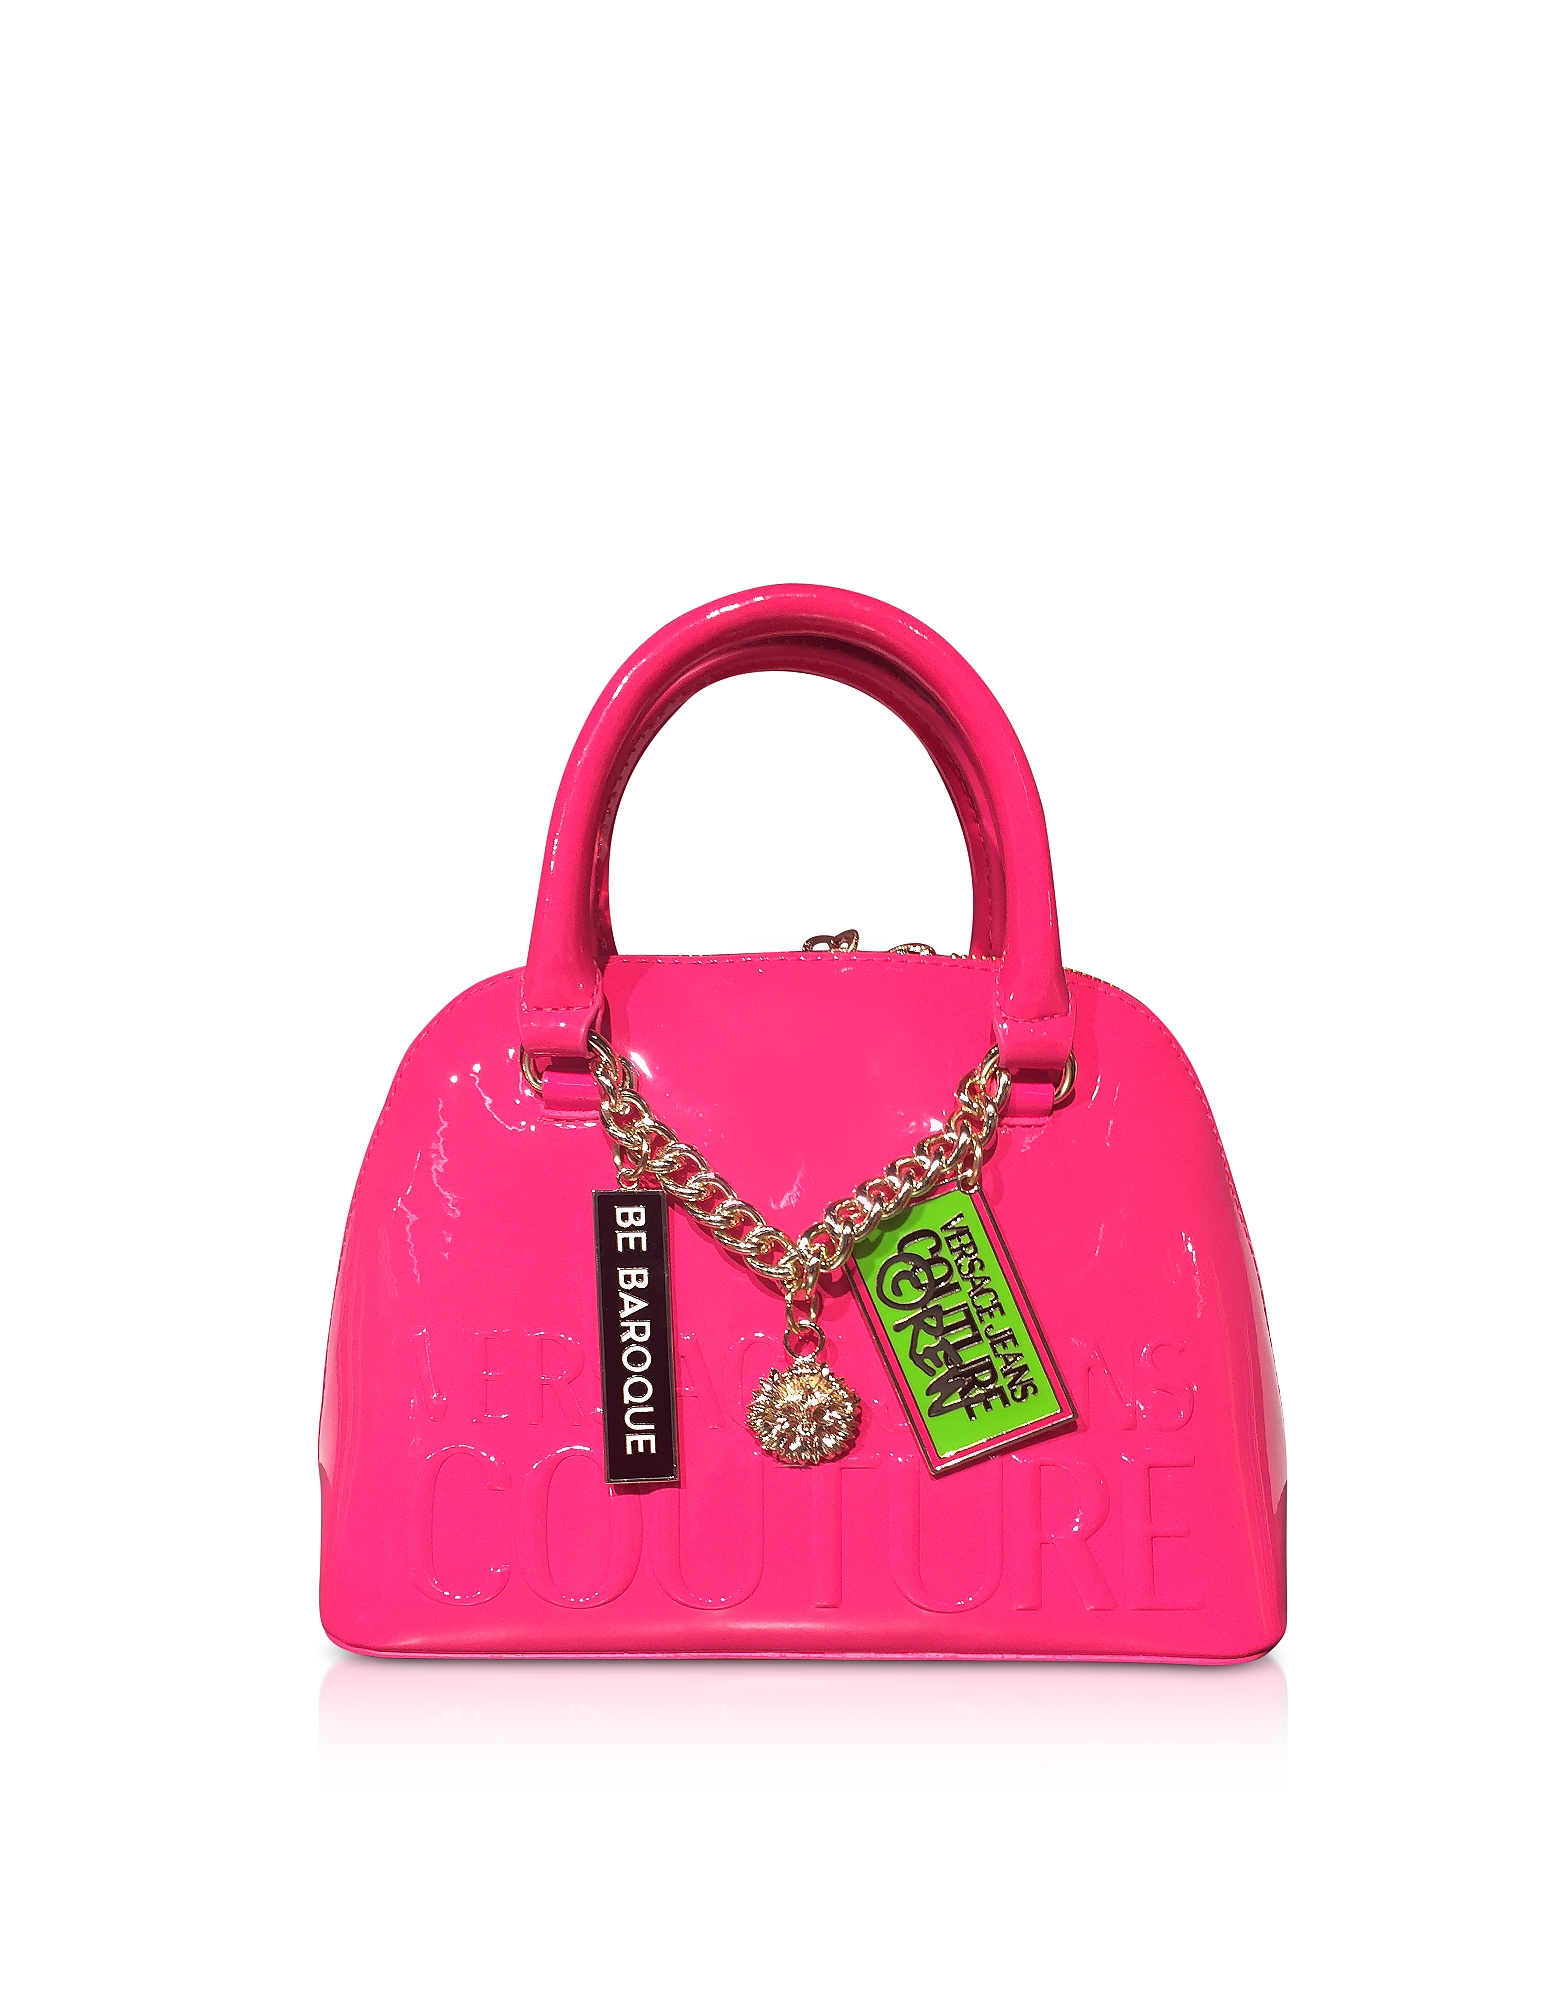 Versace Jeans Couture Designer Handbags, Embossed Logo Top Handle Bag w/ Charms